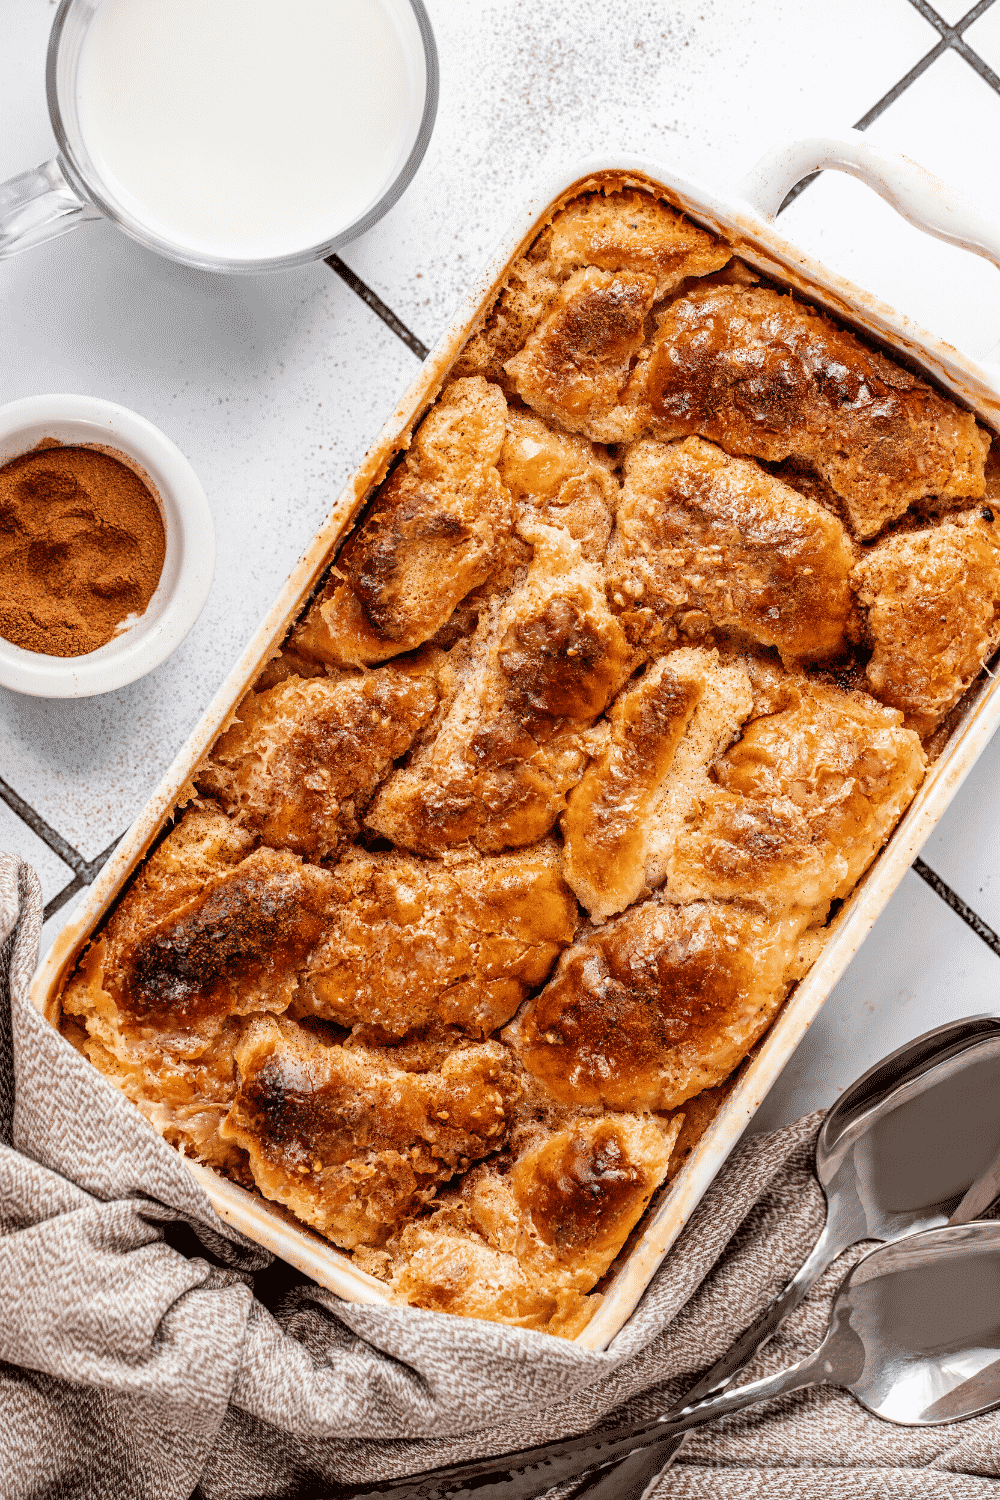 A white casserole dish with bread pudding in it. There is a small bowl of cinnamon and a small cup of milk to the left of the bowl.